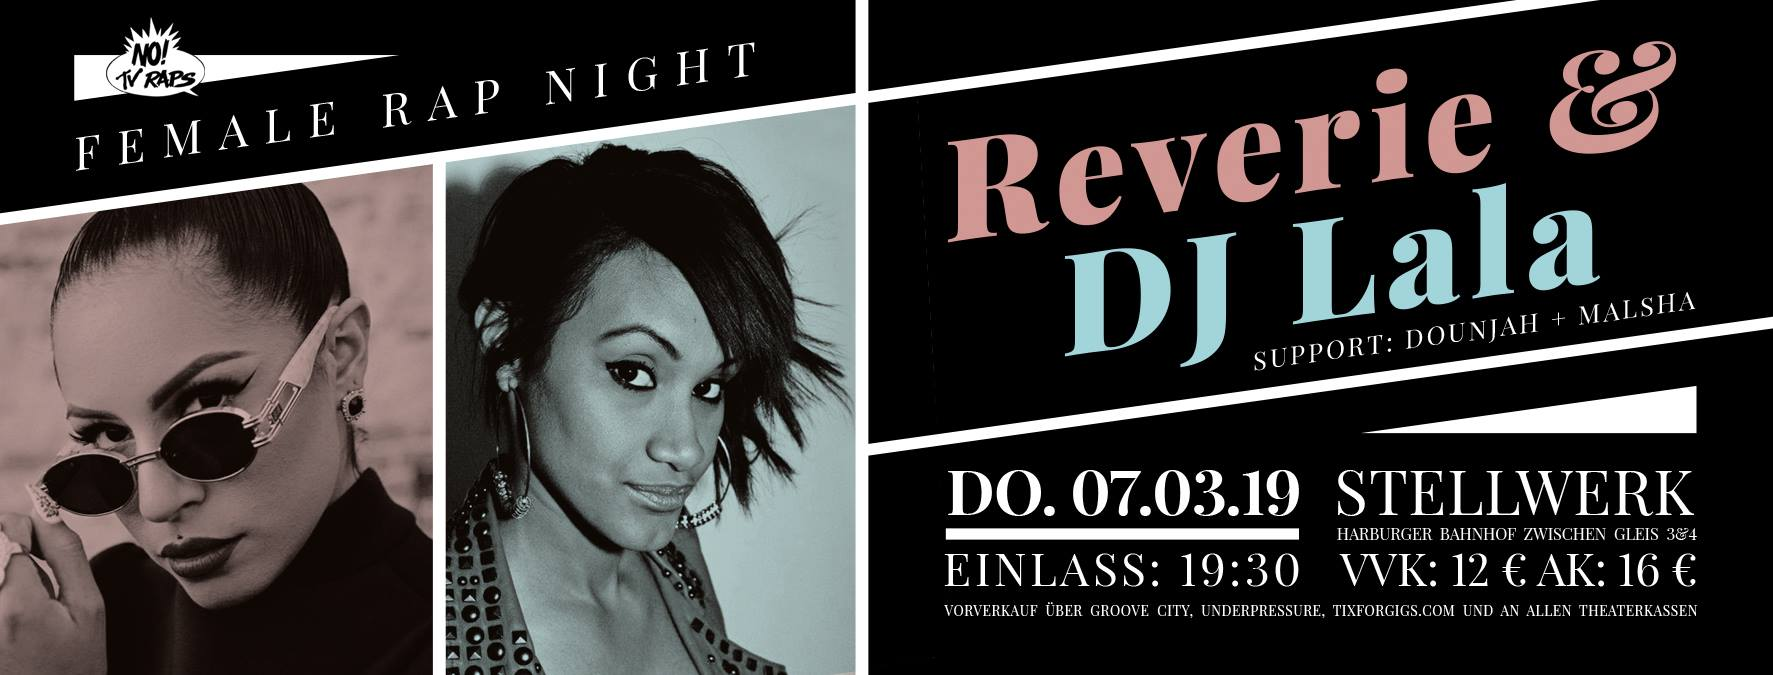 Female Rap Night feat. Reverie & DJ LALA